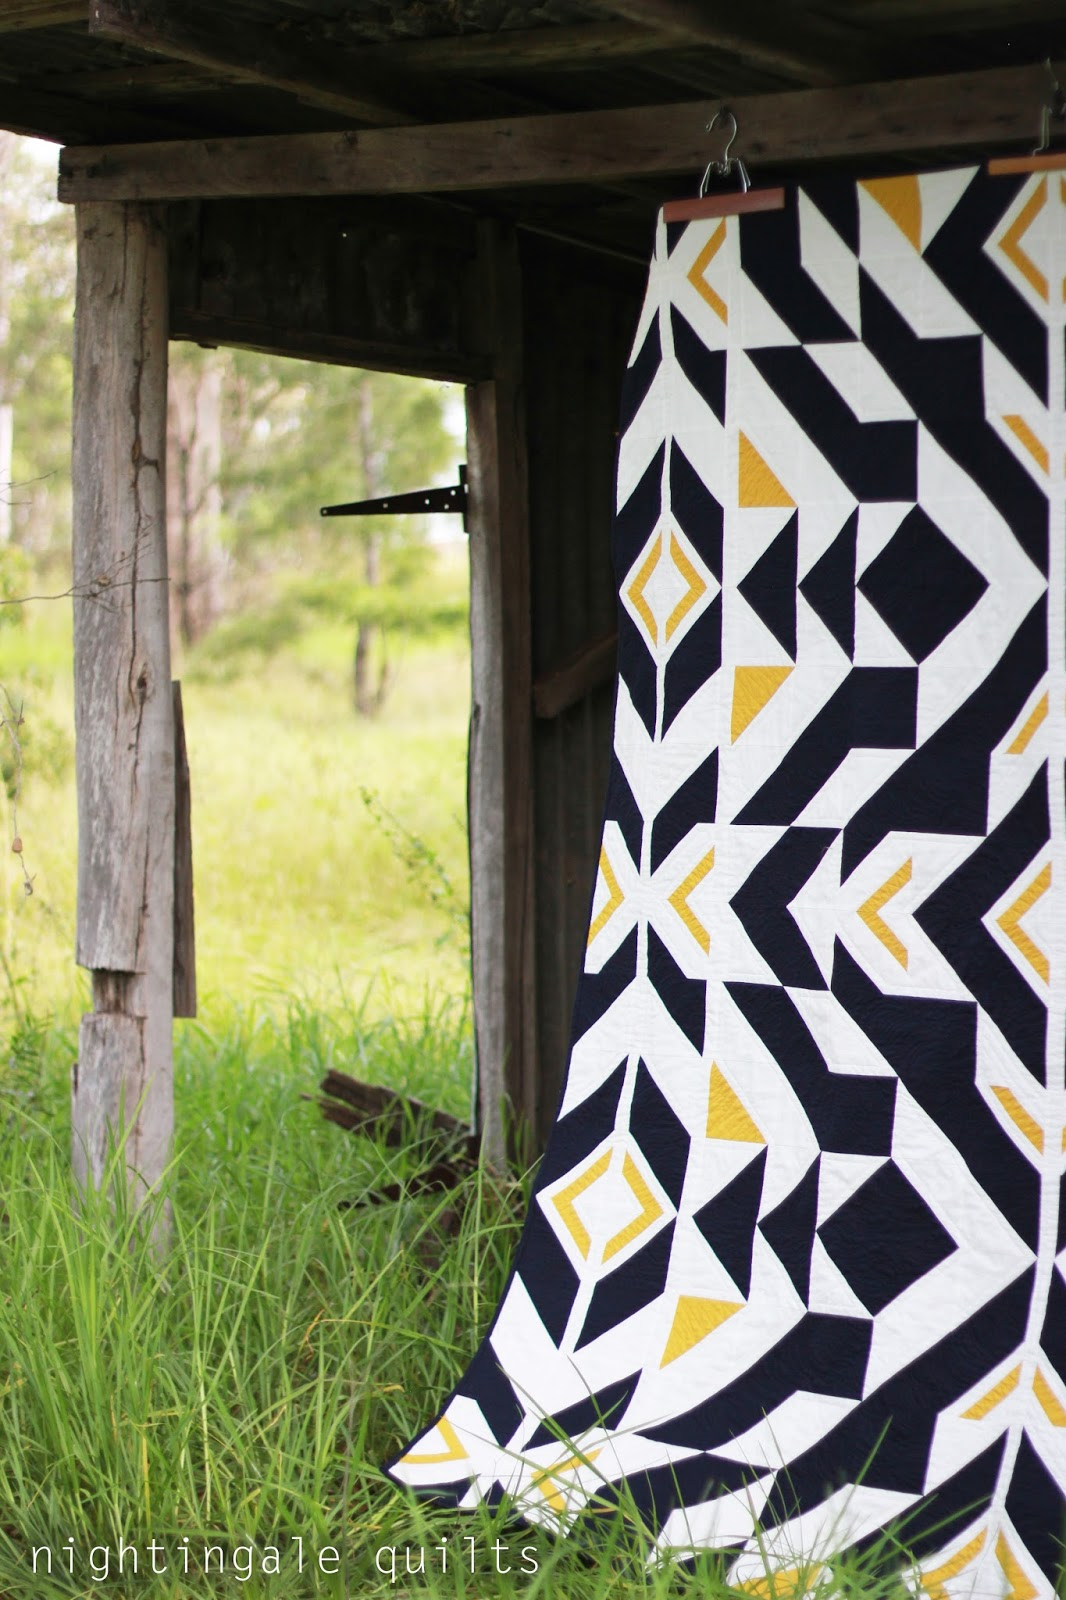 New Quilt Patterns For 2015 : Nightingale Quilts: NEW PATTERN: Bravo Indigo Quilt